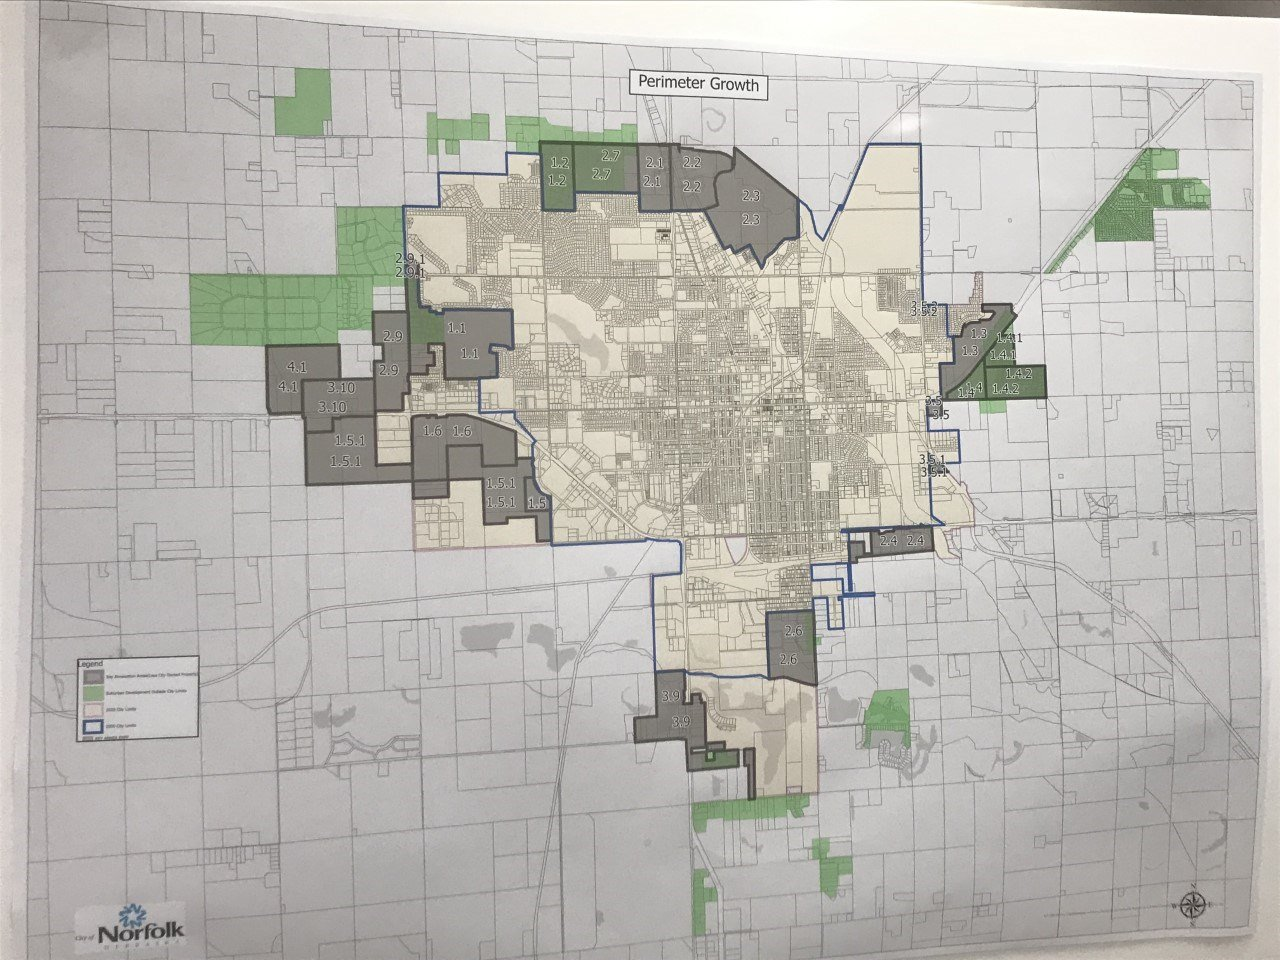 Norfolk announces open house to discuss annexation